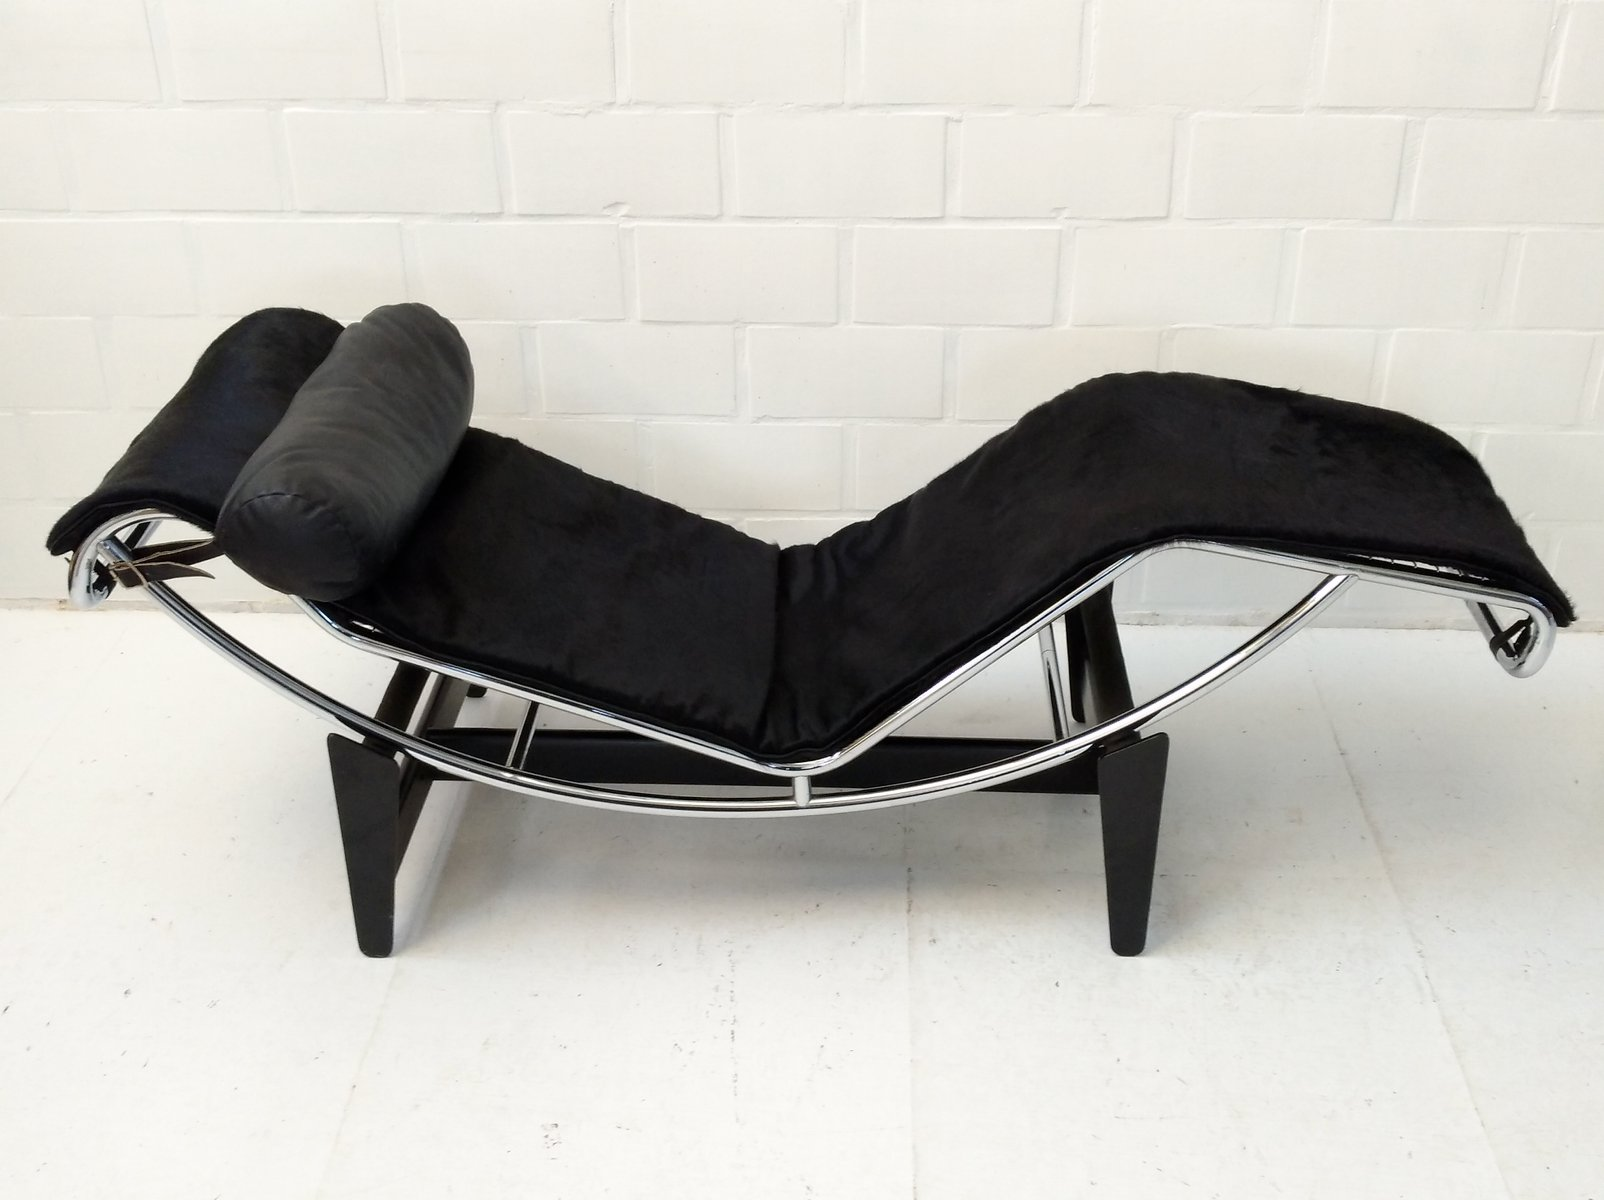 Early lc4 chaise longue by le corbusier perriand for Cassina le corbusier lc4 chaise longue